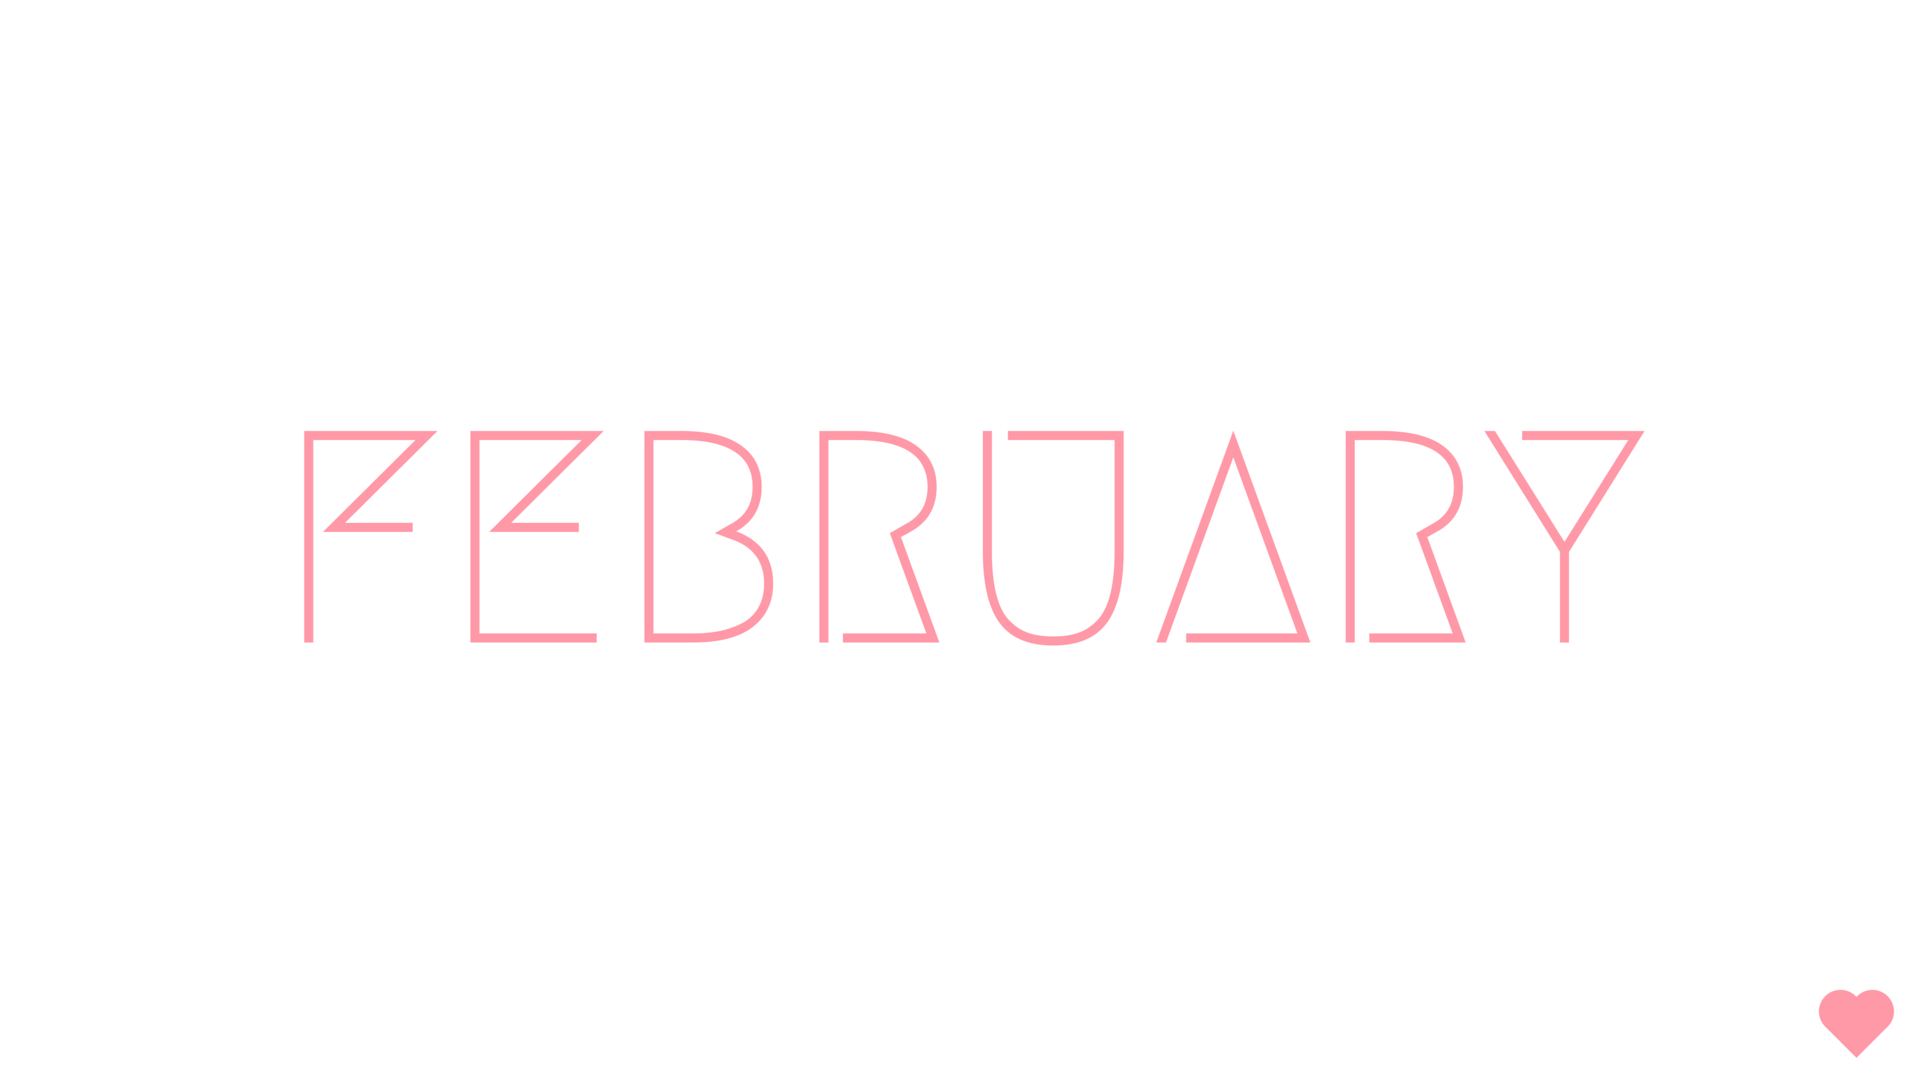 FEBRUARY WALLPAPER HELLO BLACK